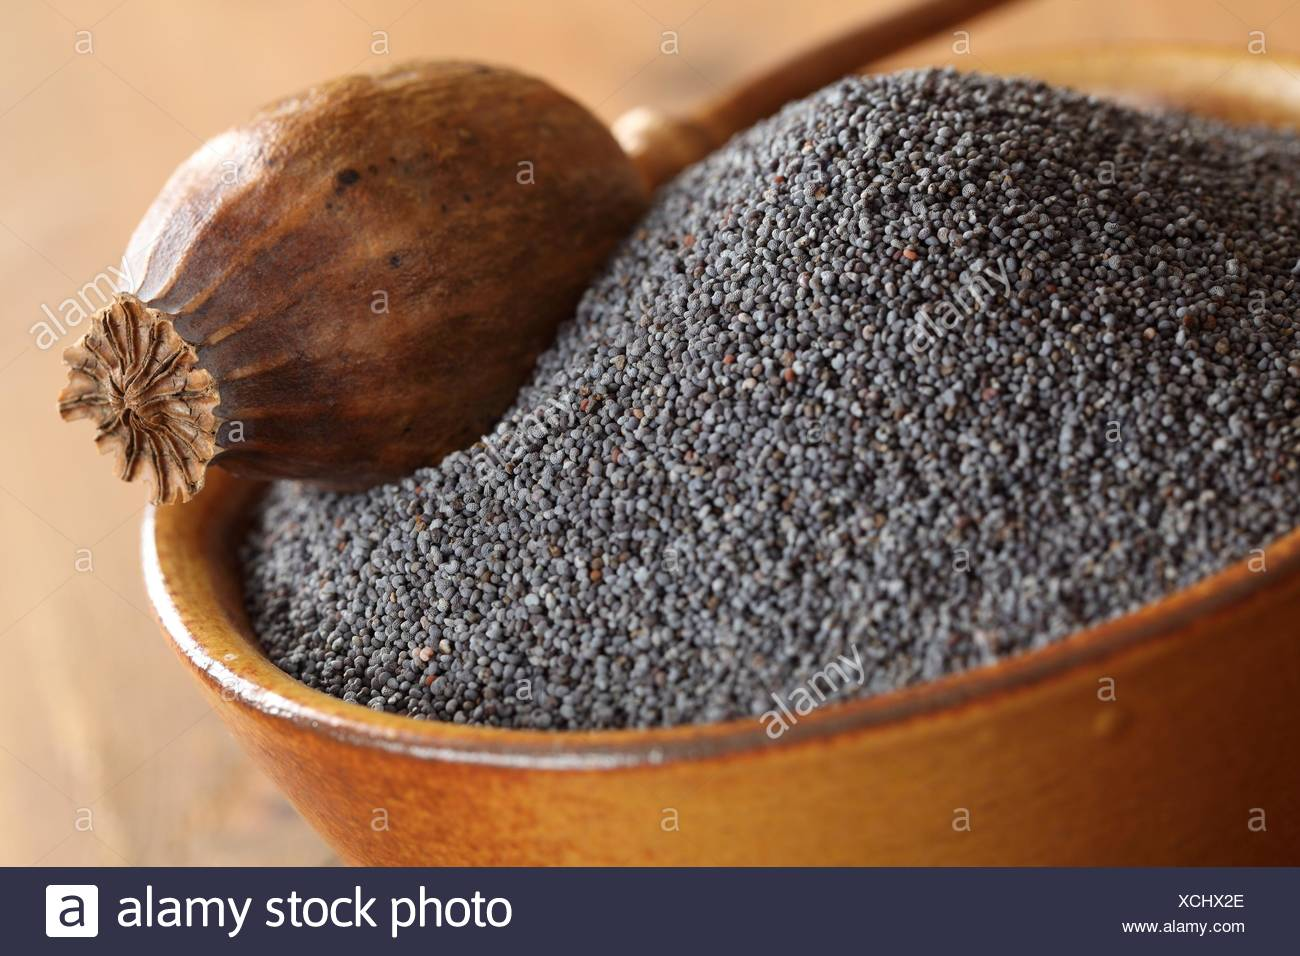 Bowl with poppy seeds and dry poppy pod. - Stock Image